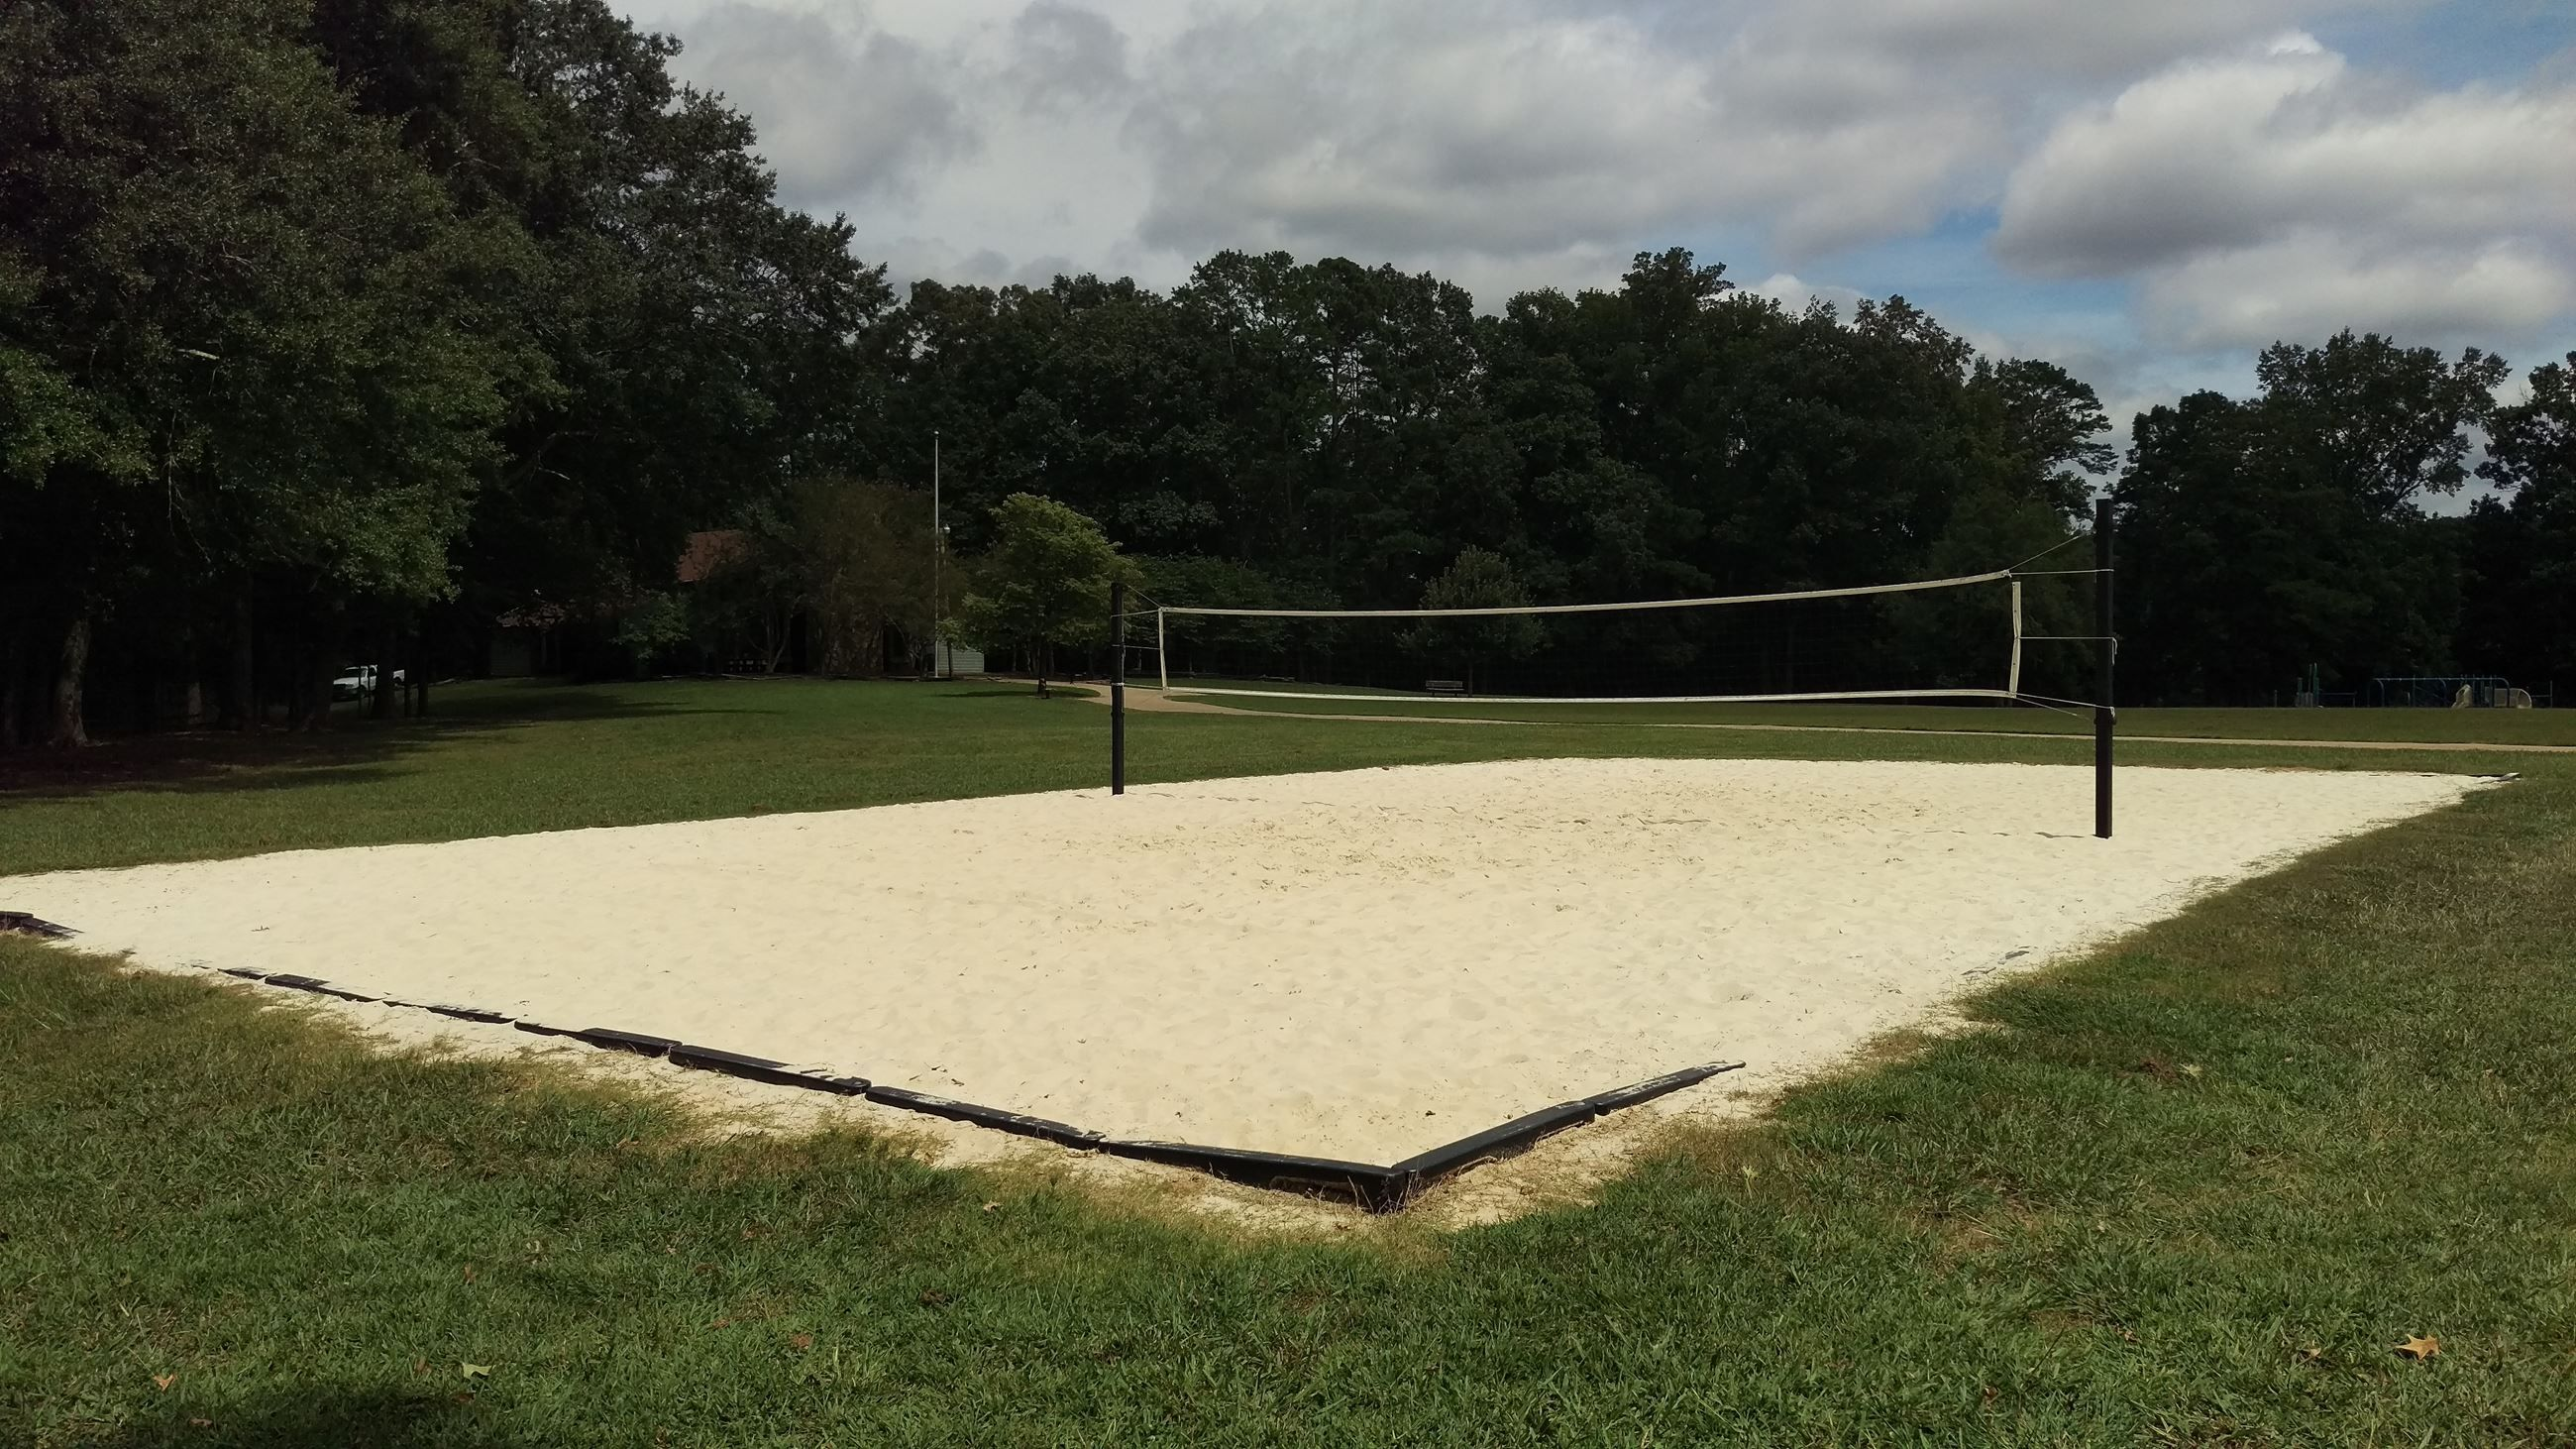 Sand Volleyball Courts Google Search In 2020 Sand Volleyball Court Park Volleyball